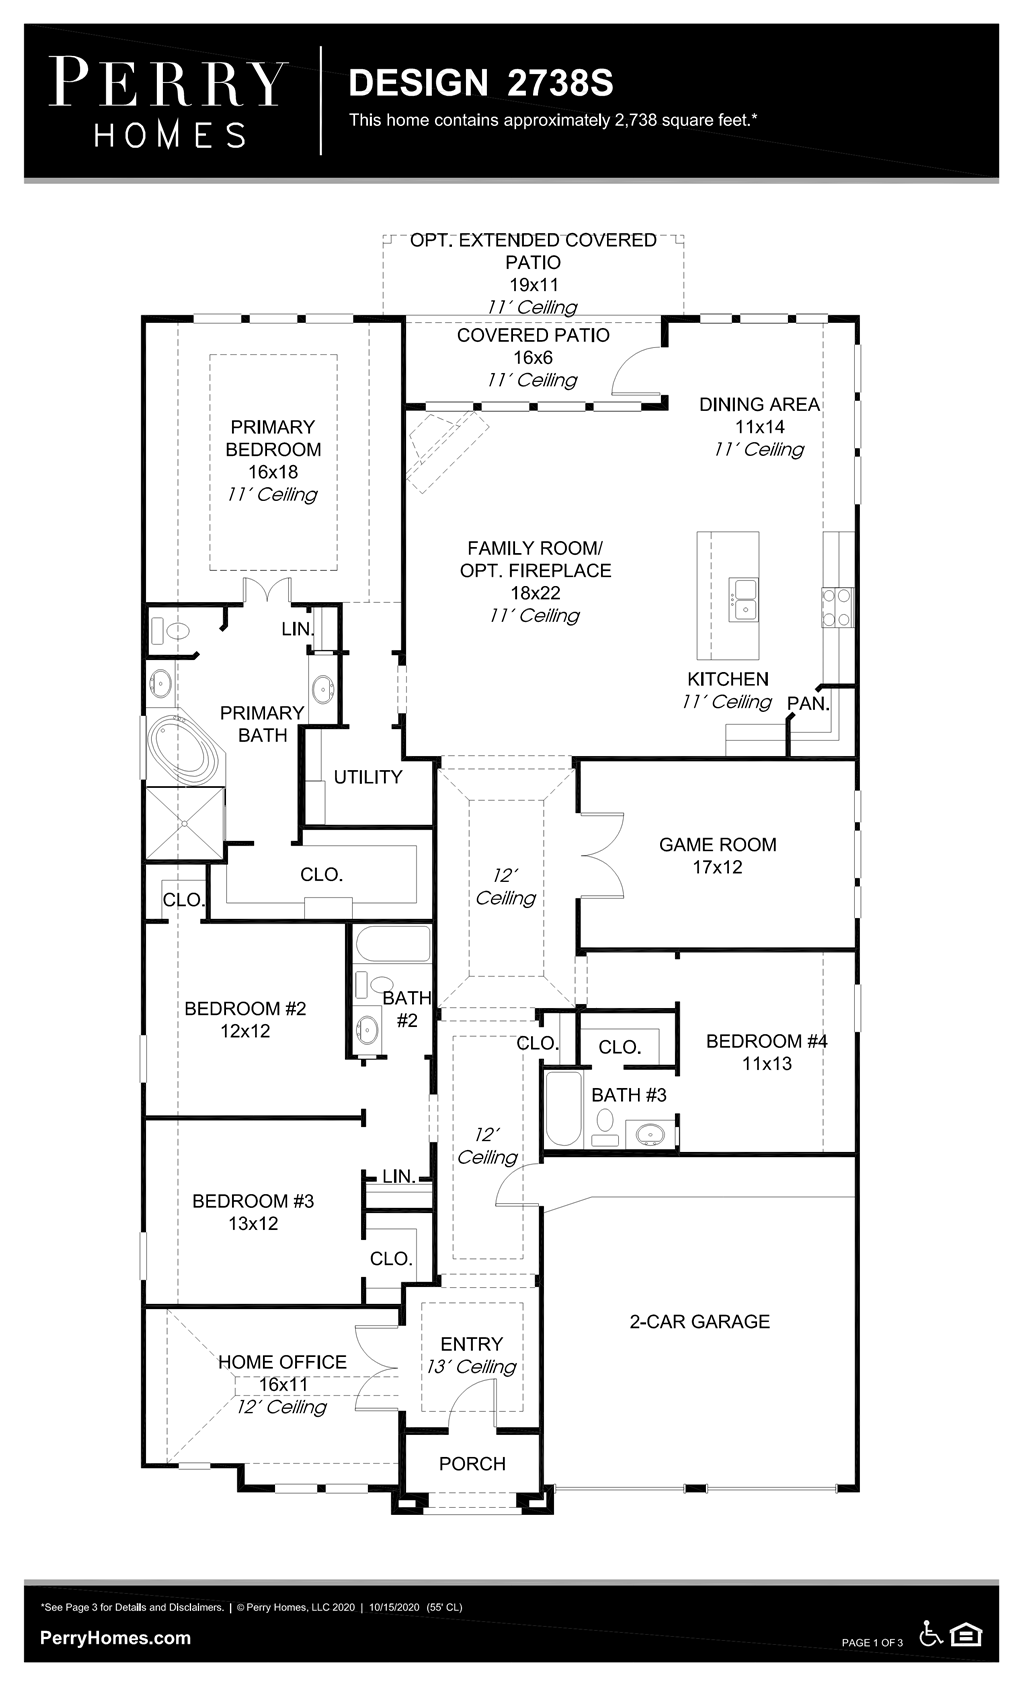 Floor Plan for 2738S